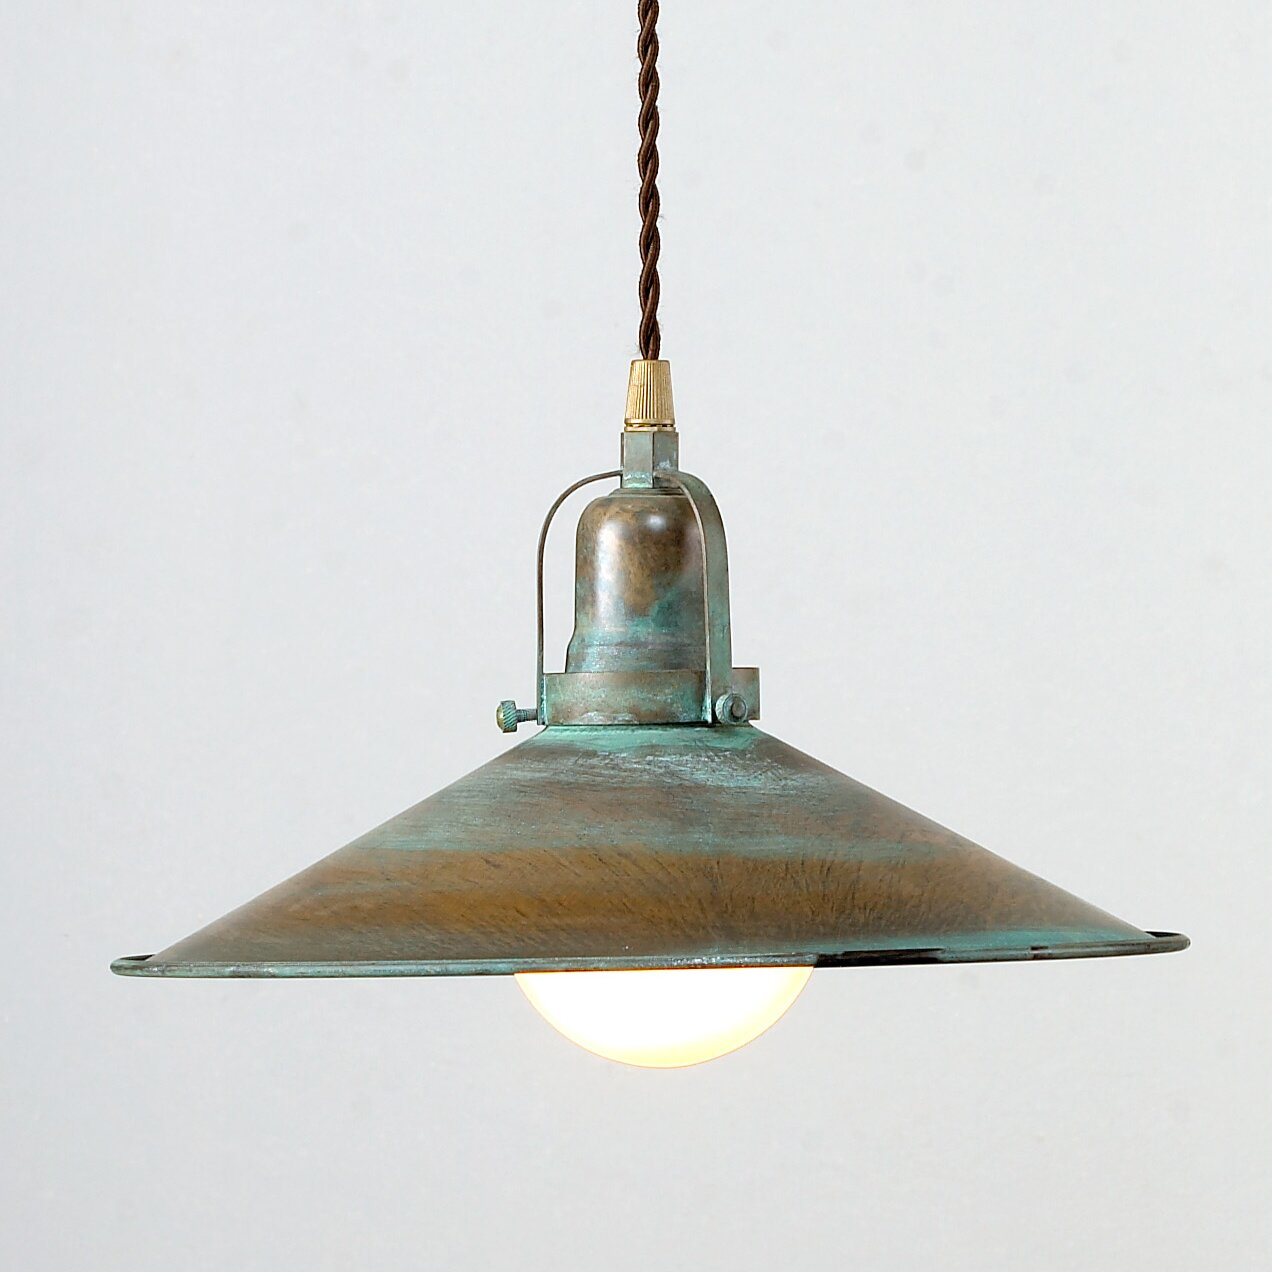 Lustrarte Lighting Rustic D 39 39 Avo 1 Light Large Pendant